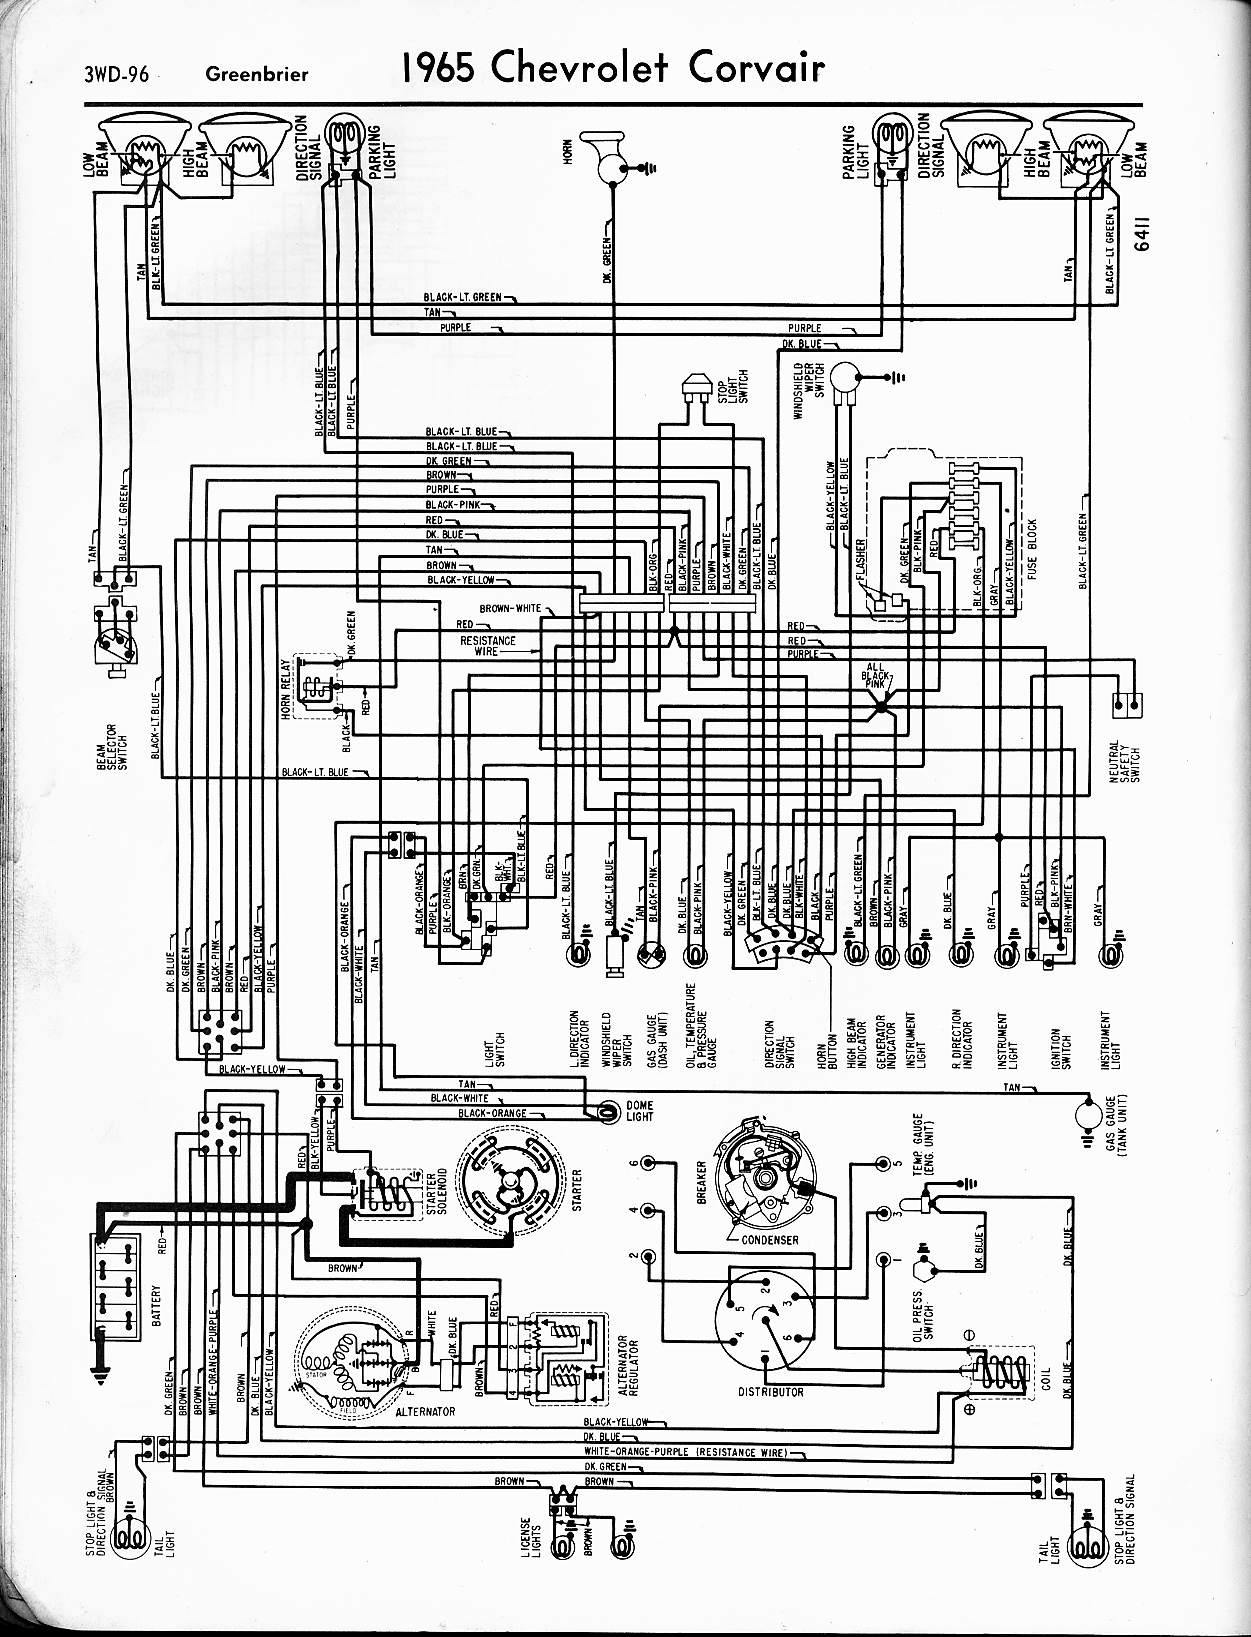 1965 Nova Wiring Diagram Strategy Design Plan 76 57 65 Chevy Diagrams Rh Oldcarmanualproject Com 70 Starter